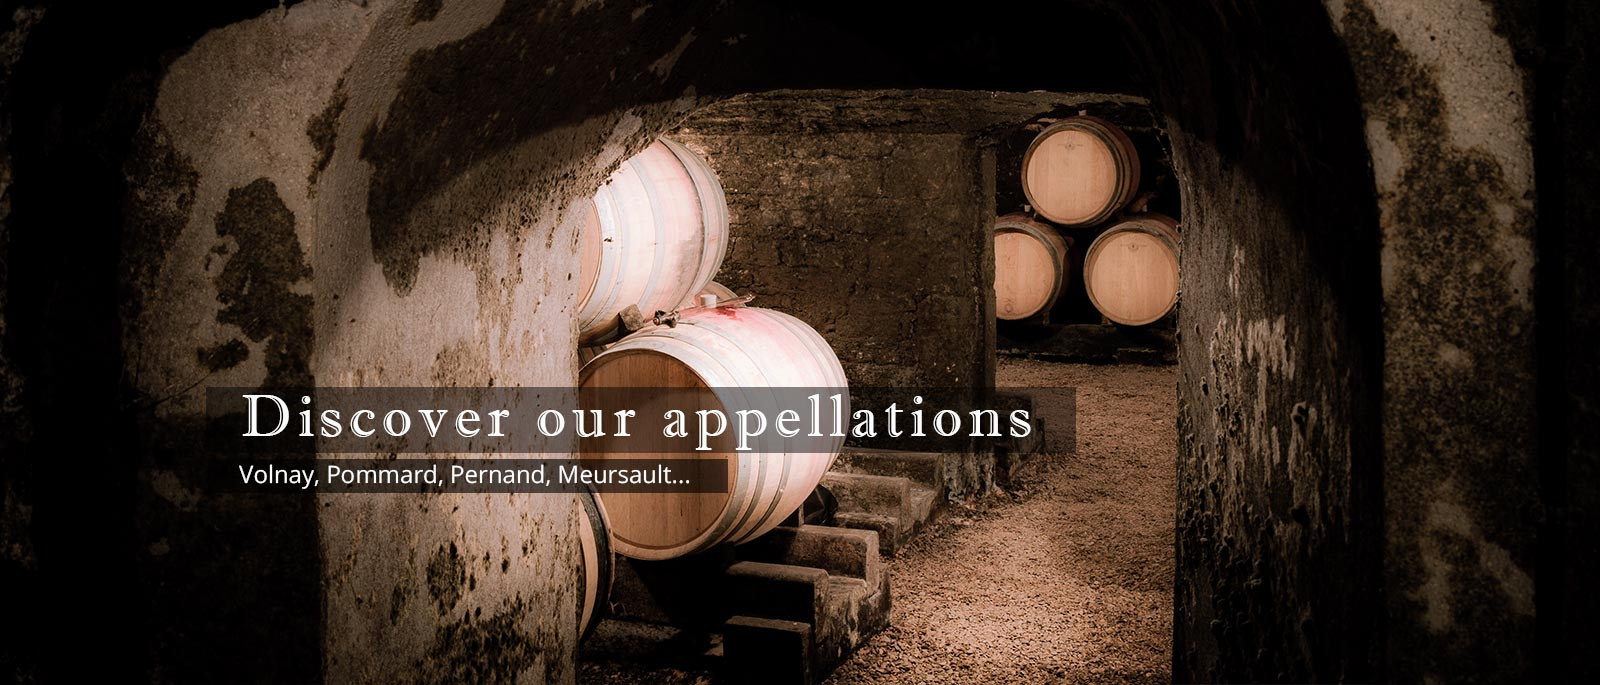 discover-our-appellations.jpg